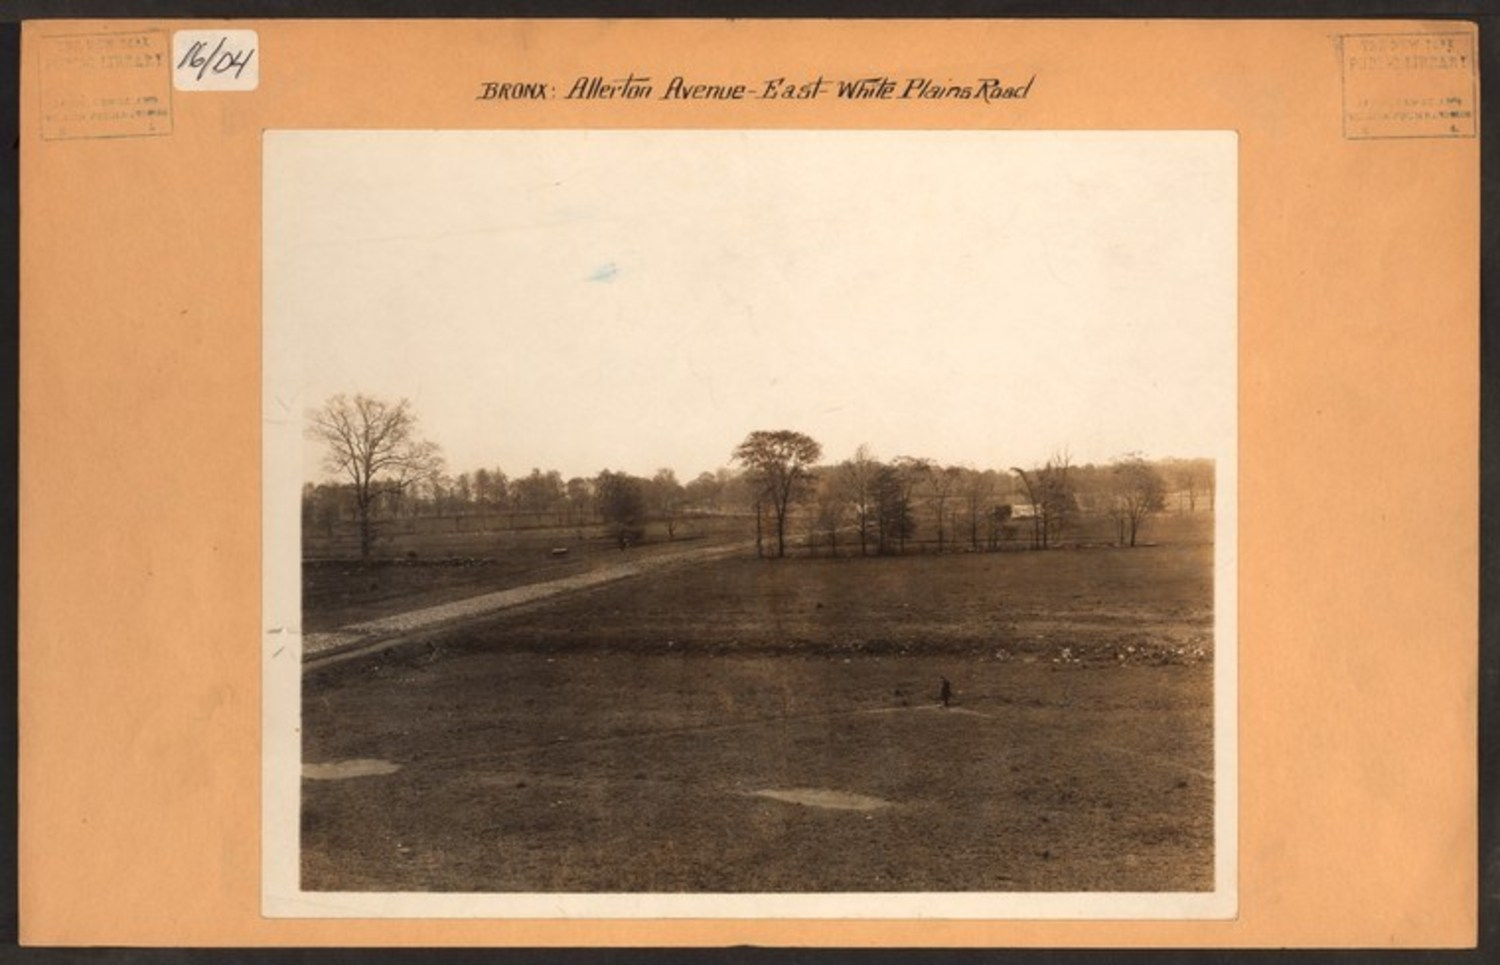 Bronx: Allerton Avenue – White Plains Road